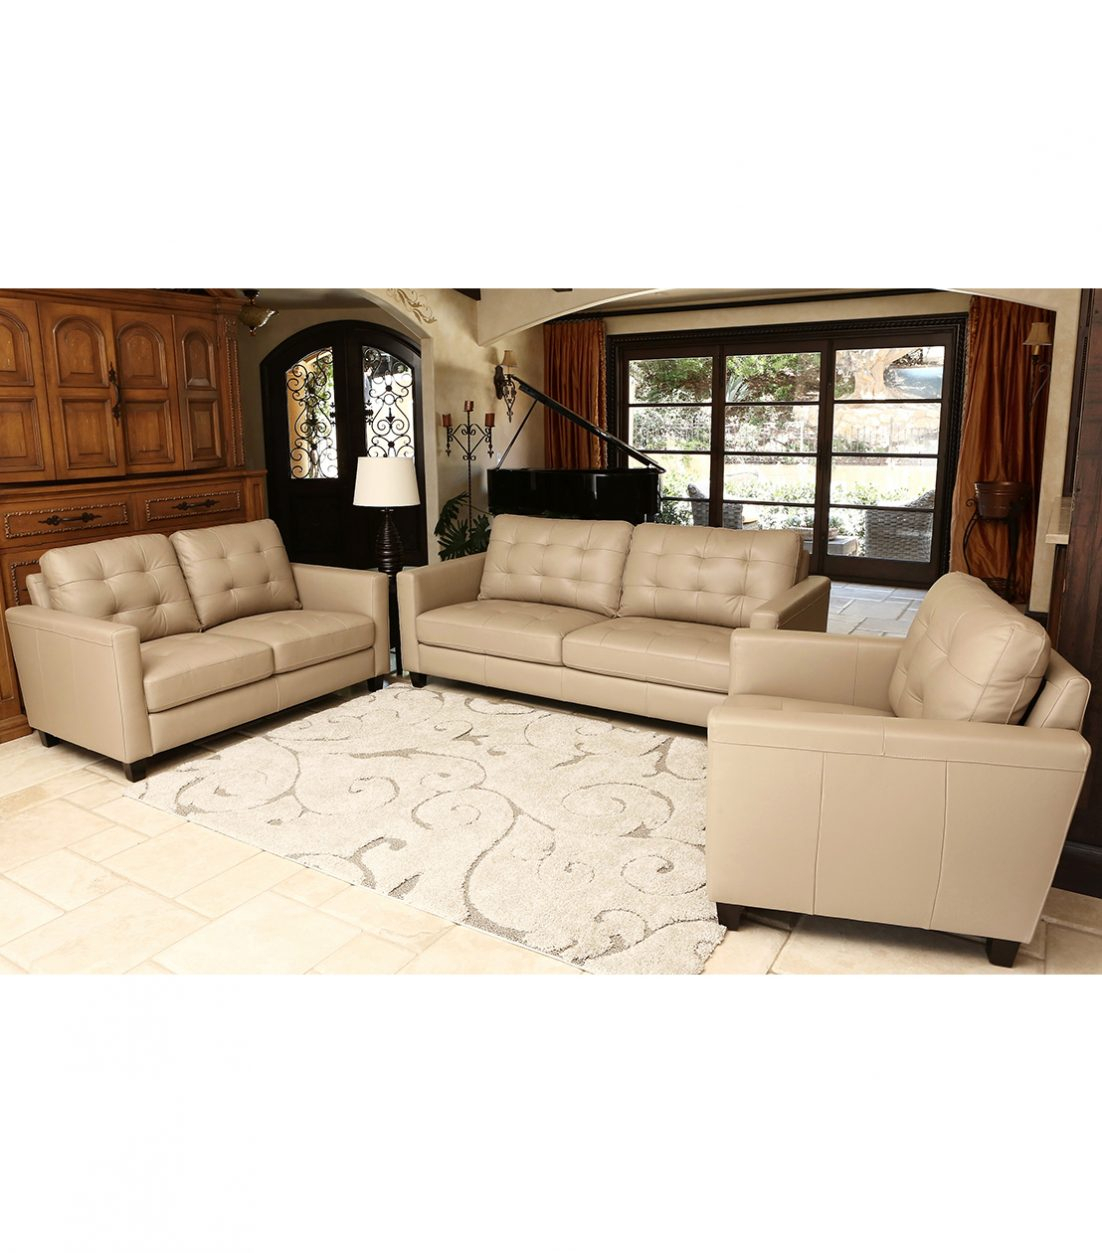 3 Piece Living Room Set Casta Products Pinterest Sofa And Small For Mcdade Ash Sofa Chairs (Photo 10 of 20)